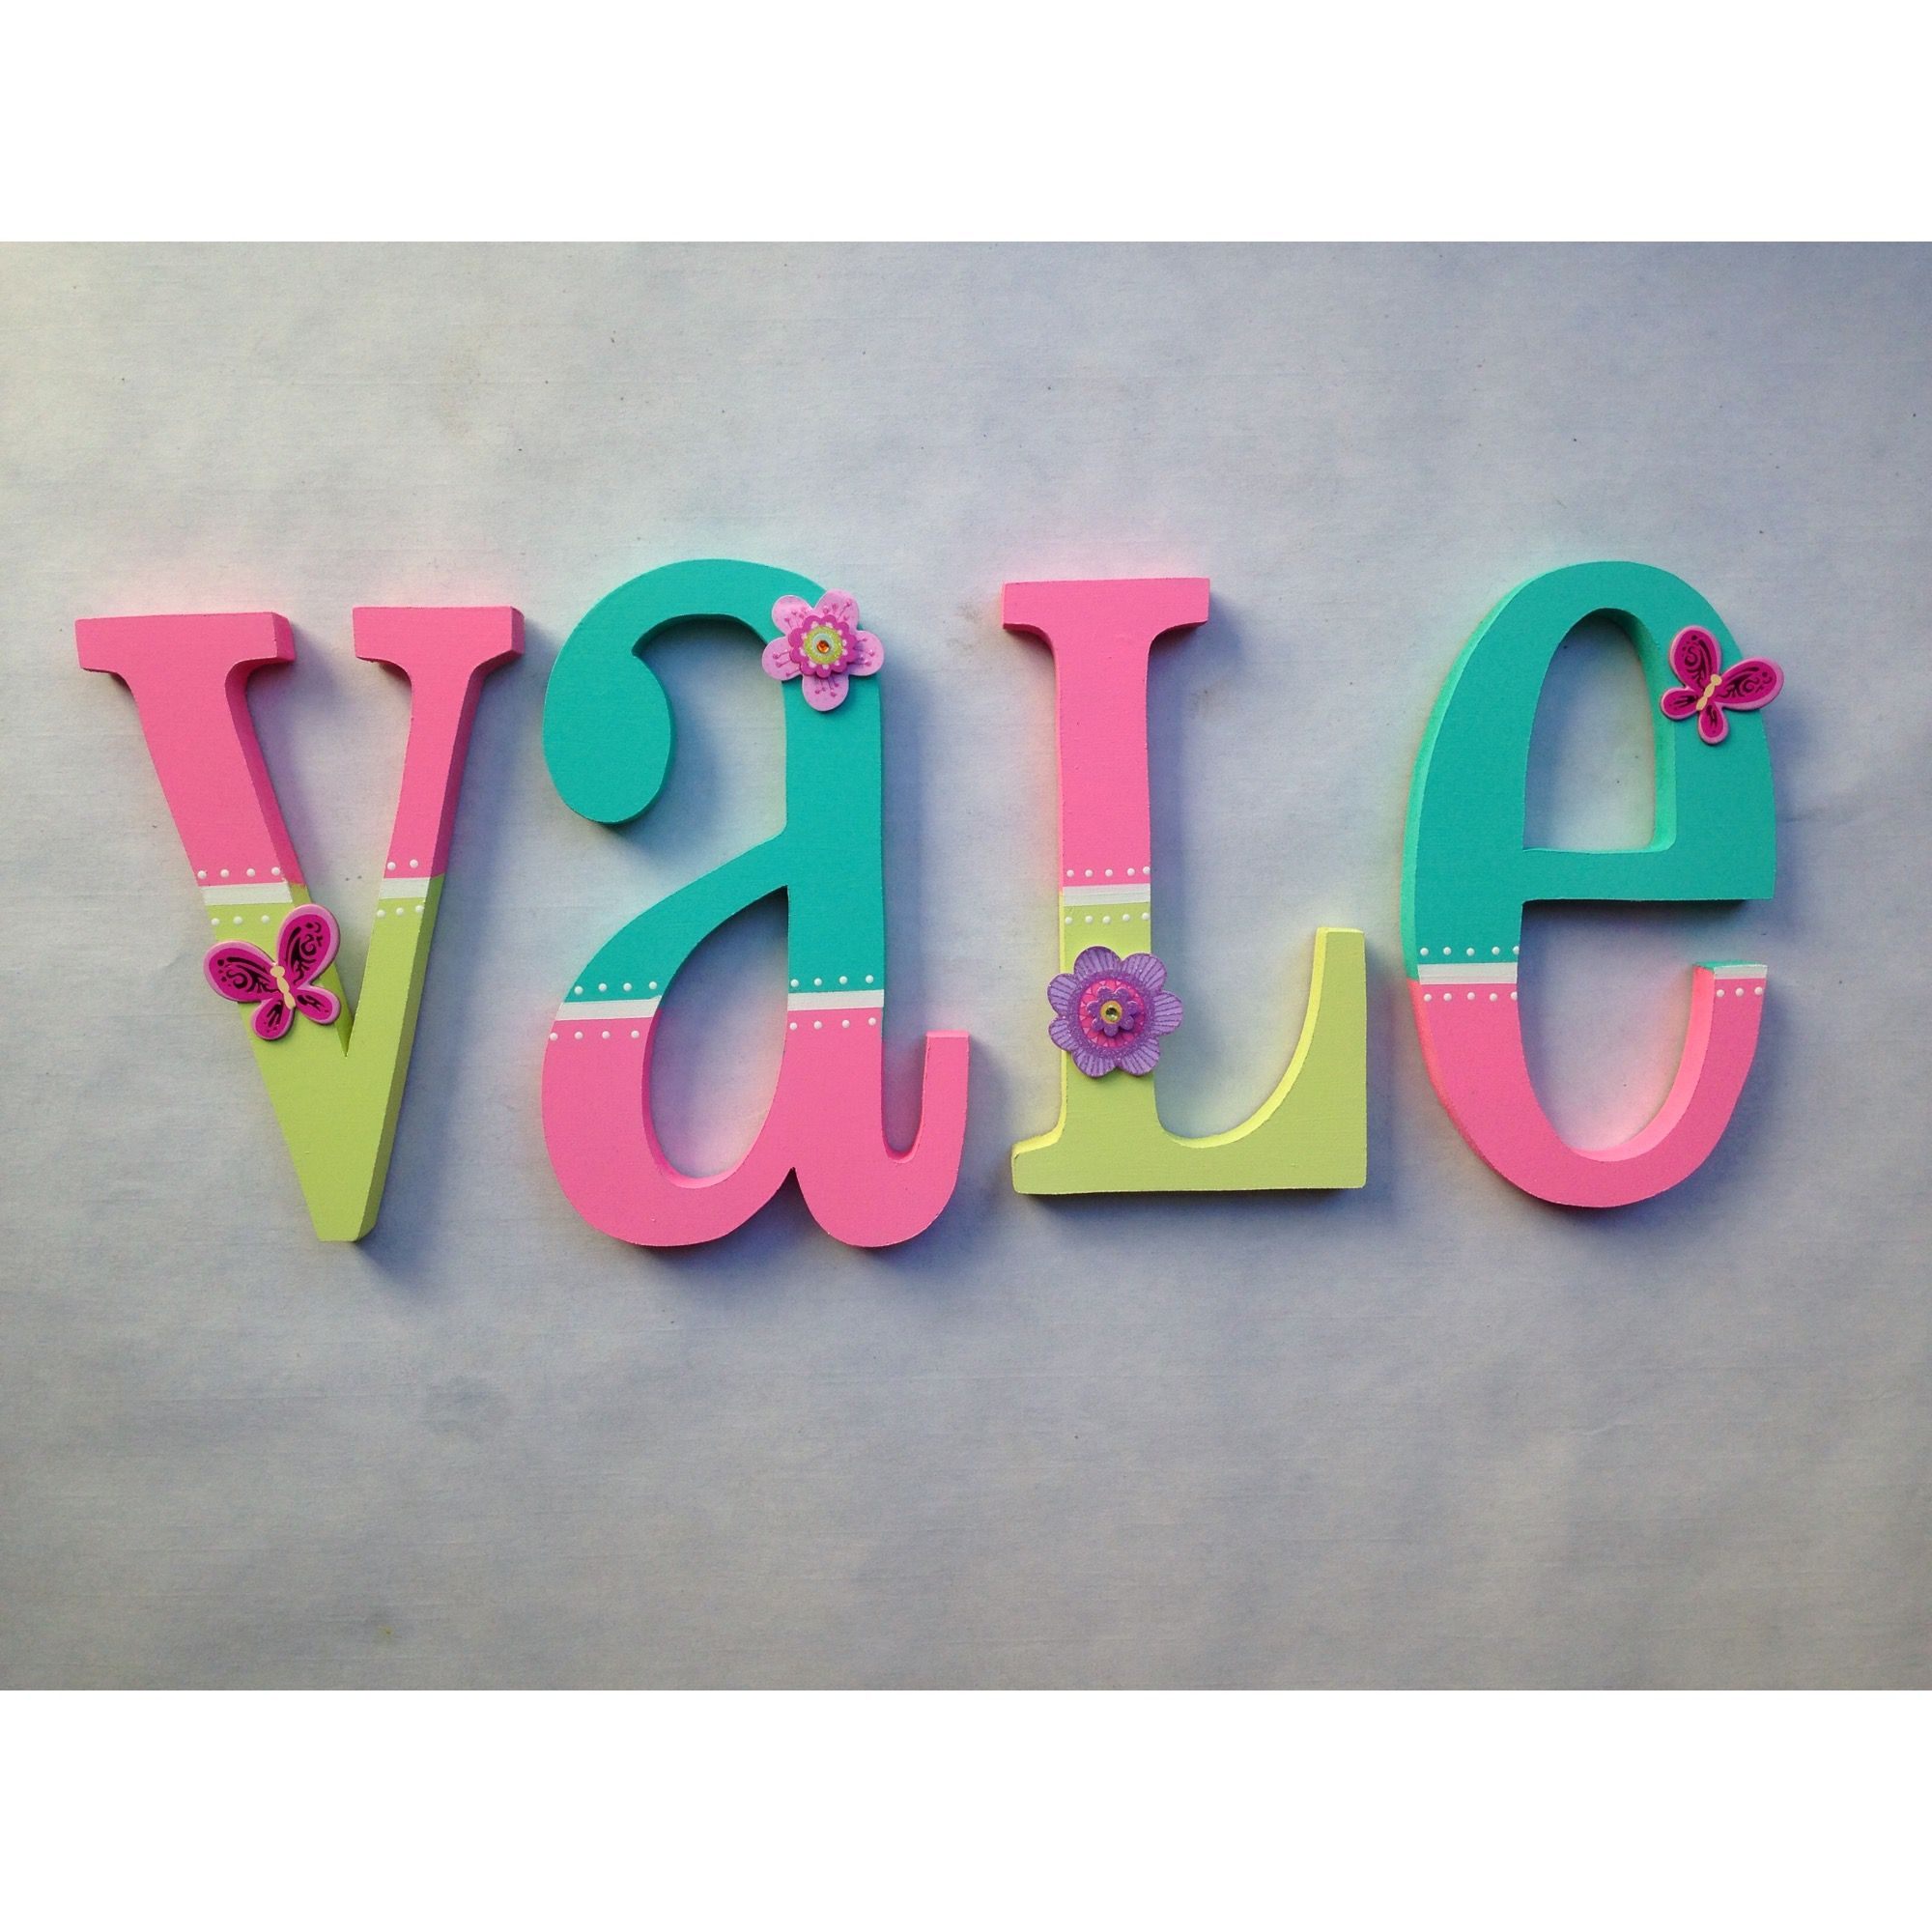 Decorar Con Letras Nursery Decor Letters Letras De Madera Para Decorar On